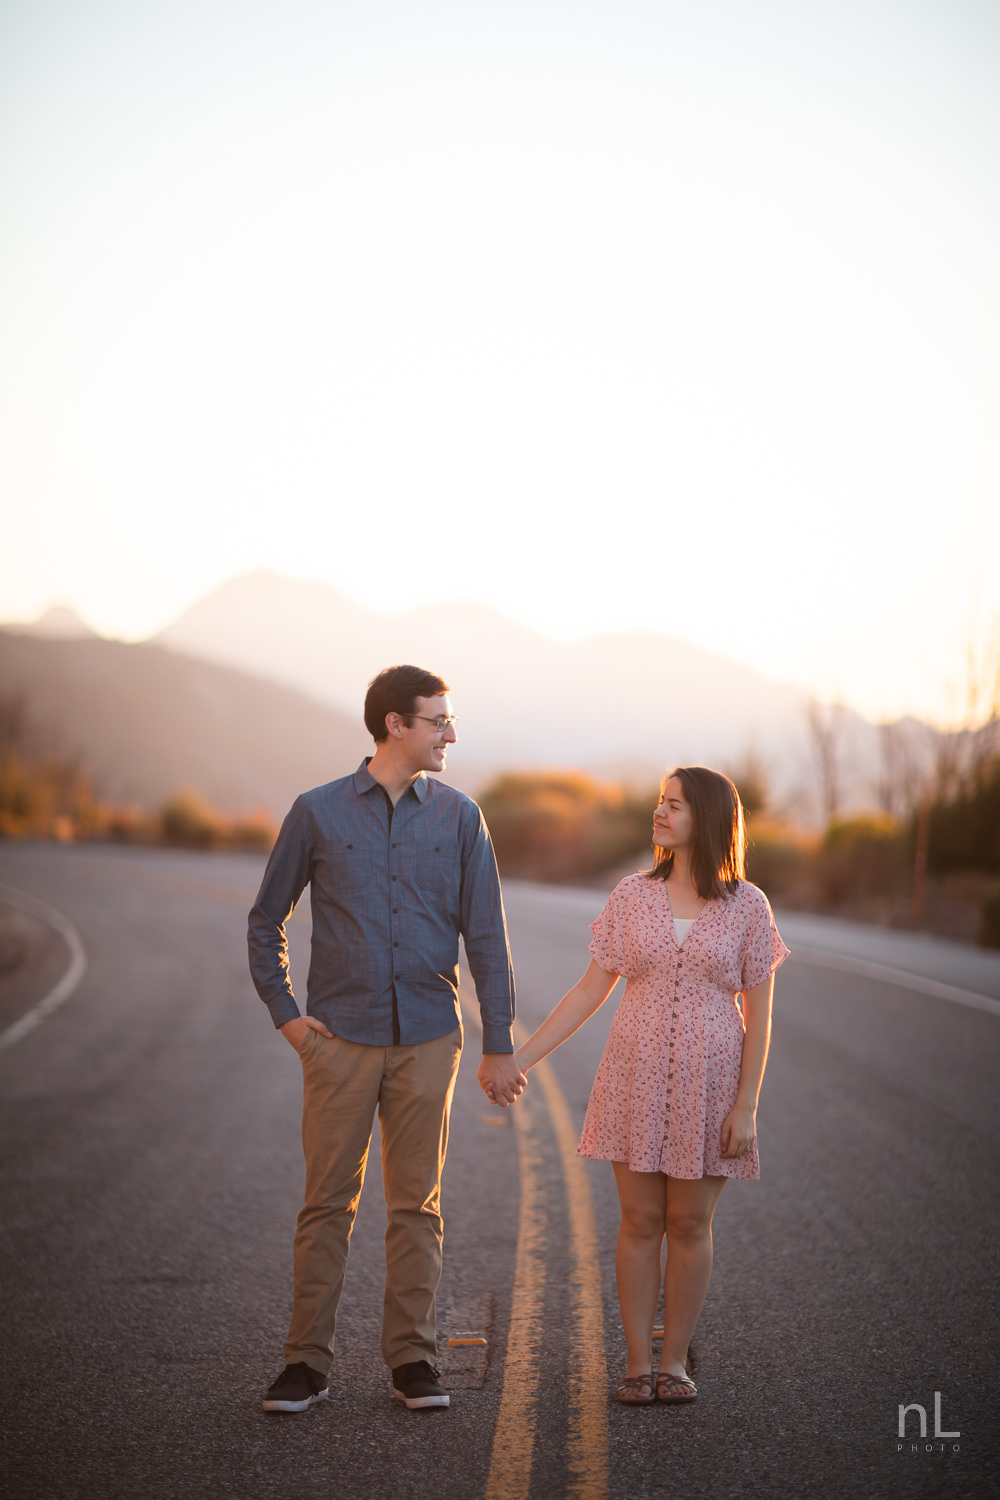 los-angeles-national-forest-engagement-photography-couple-holding-hands-on-road-sunset